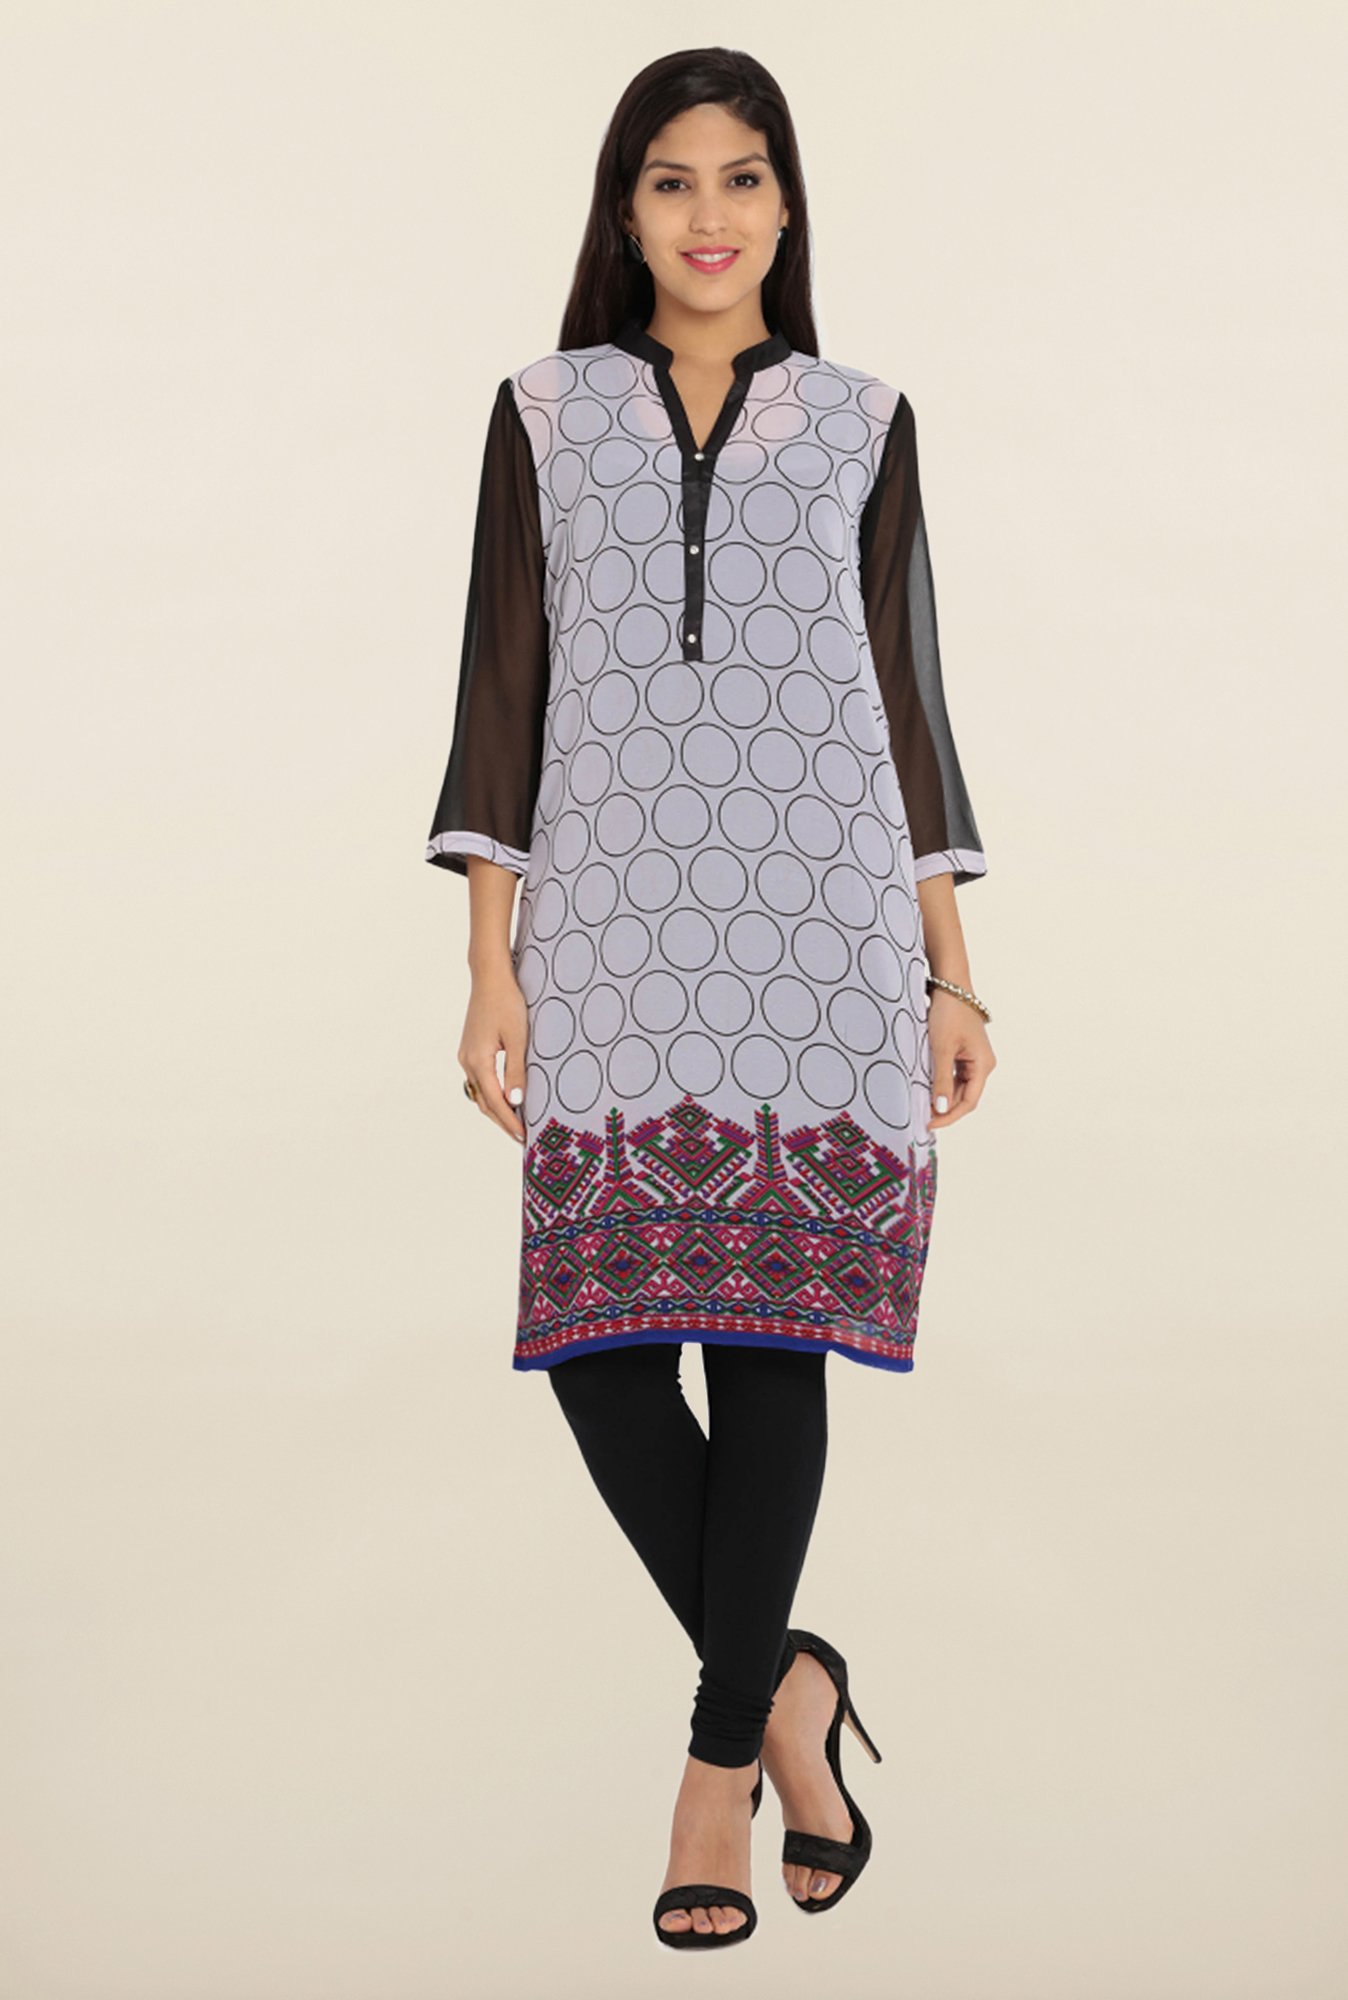 Soch White & Black Printed Georgette Kurta